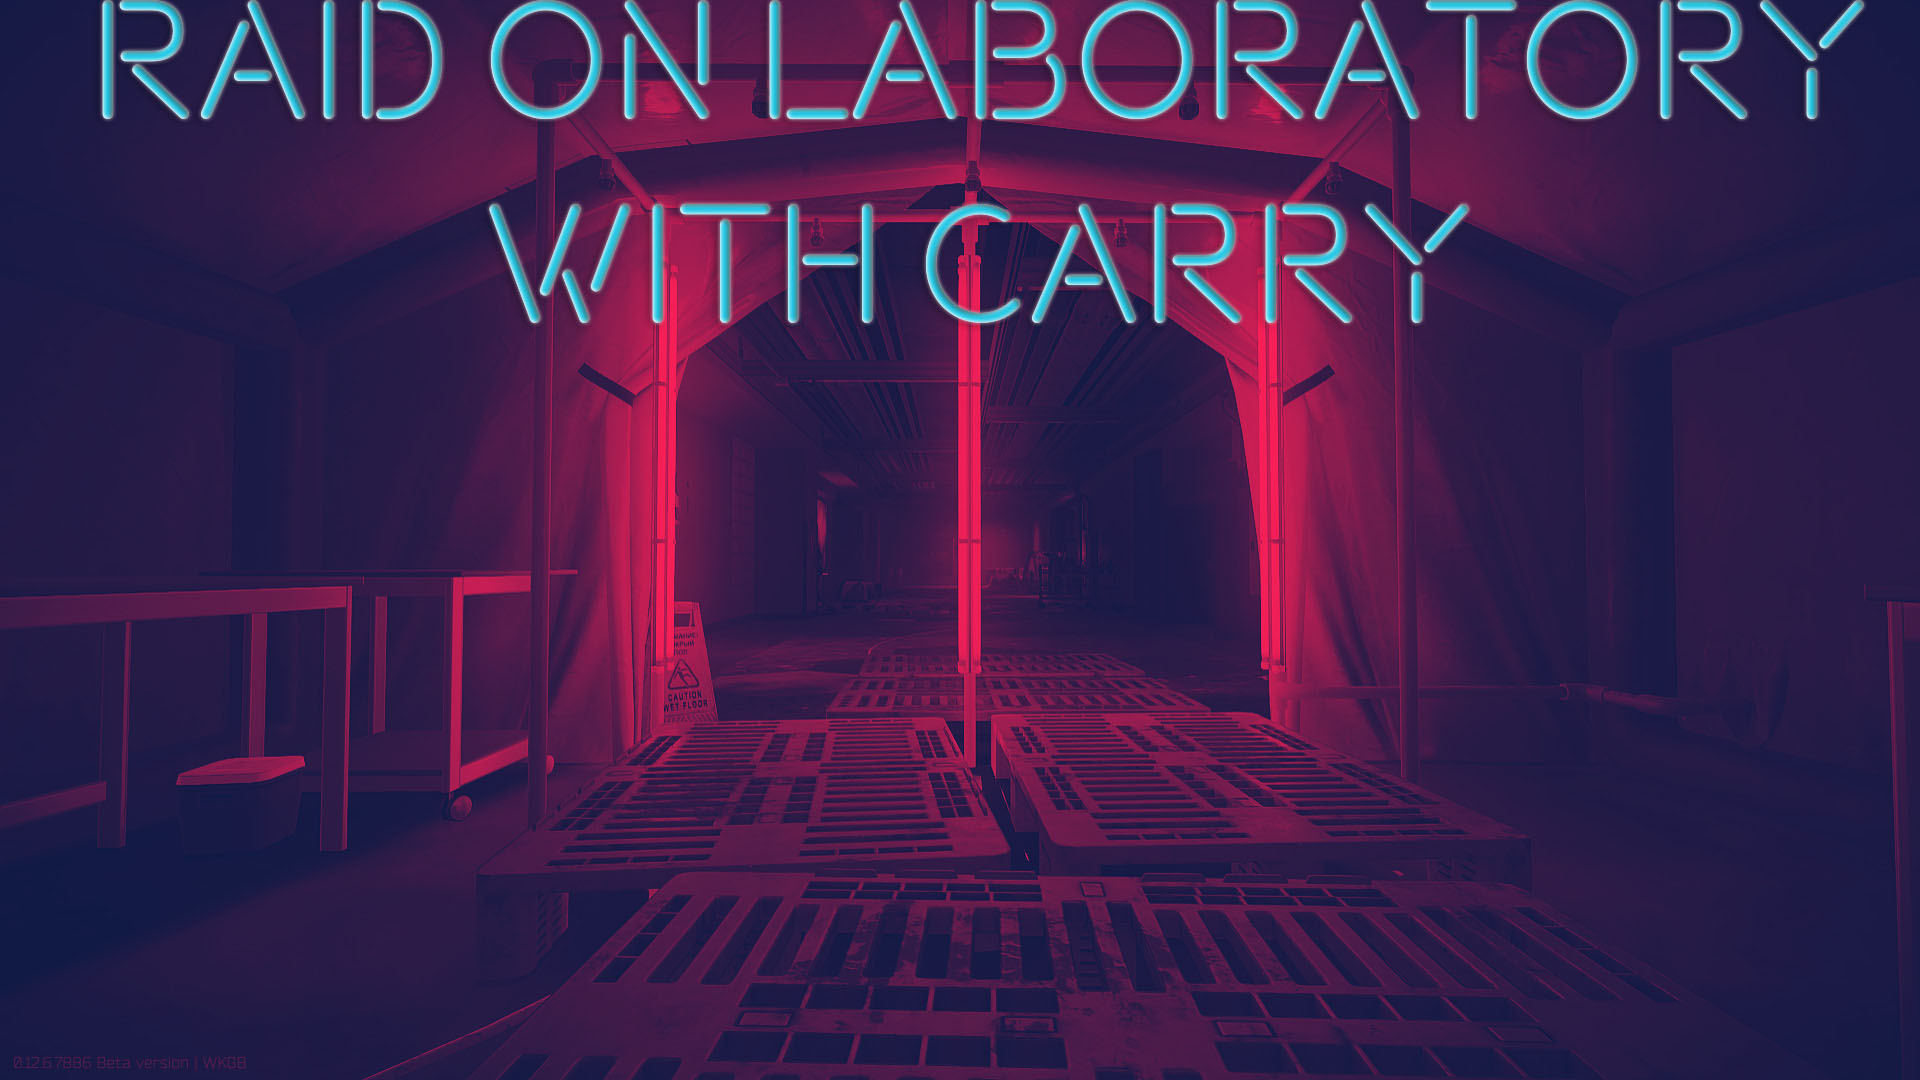 RAID ON A LABORATORY WITH A CARRY (FAST AND SAFE FOR YOU)